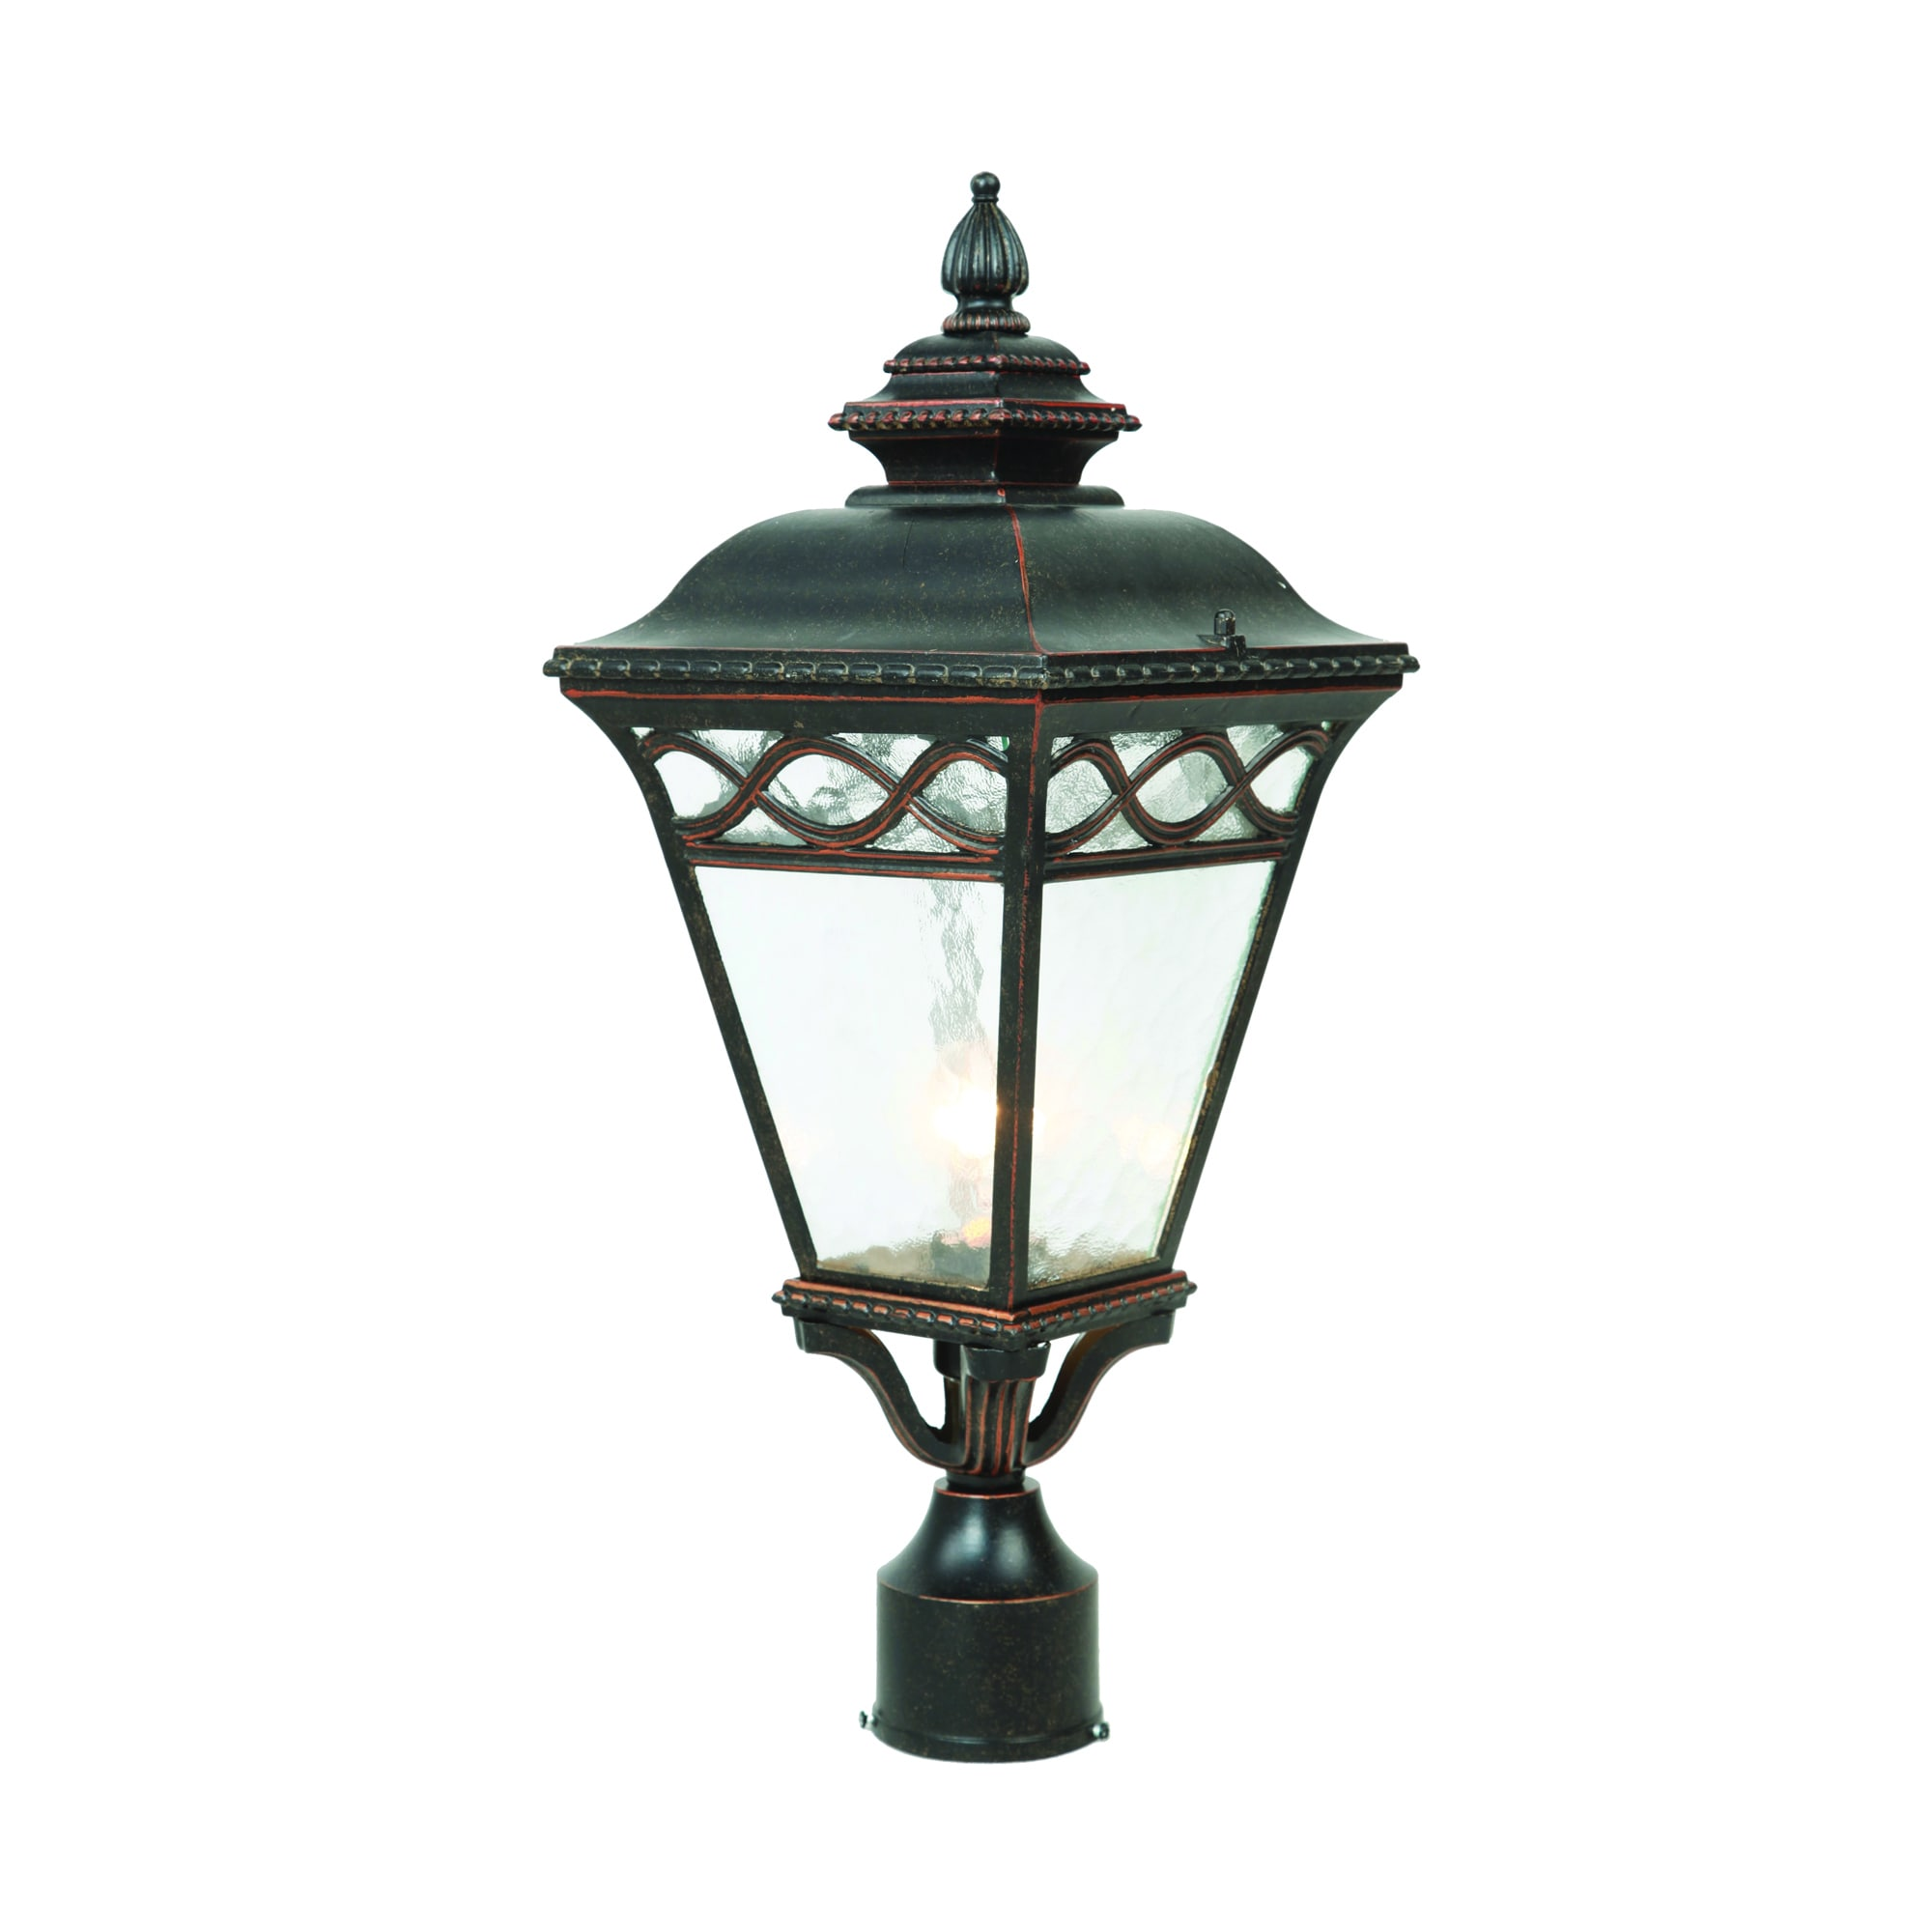 Y decor cheri outdoor lamp post light fixture in oil rubbed bronze y decor cheri outdoor lamp post light fixture in oil rubbed bronze oil rubbed bronze free shipping today overstock 18626427 arubaitofo Gallery